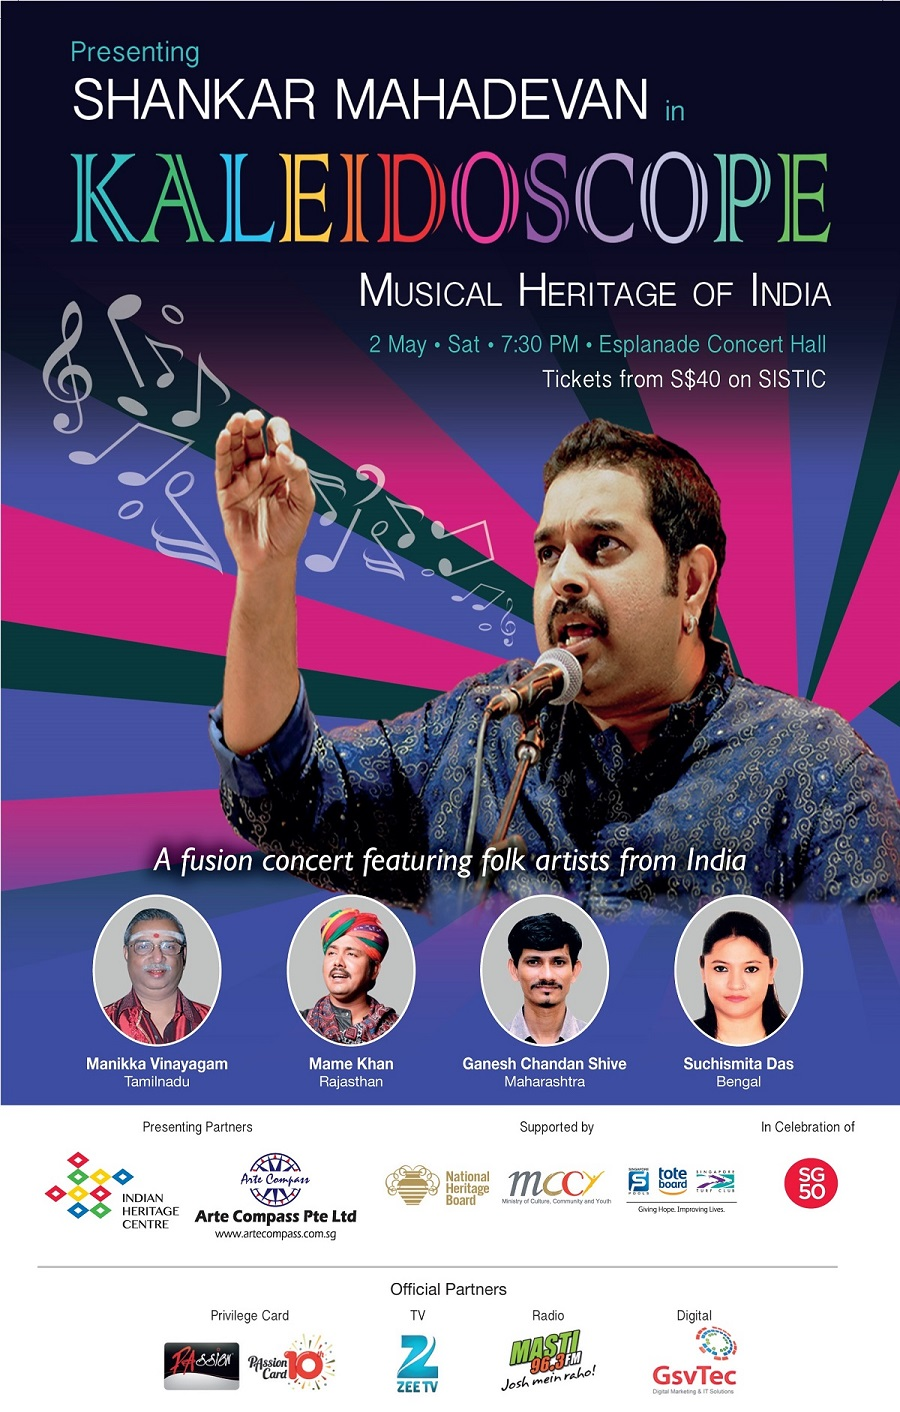 ''Kaleidoscope'' with Shankar Mahadevan  - colorful heritage of Indian music